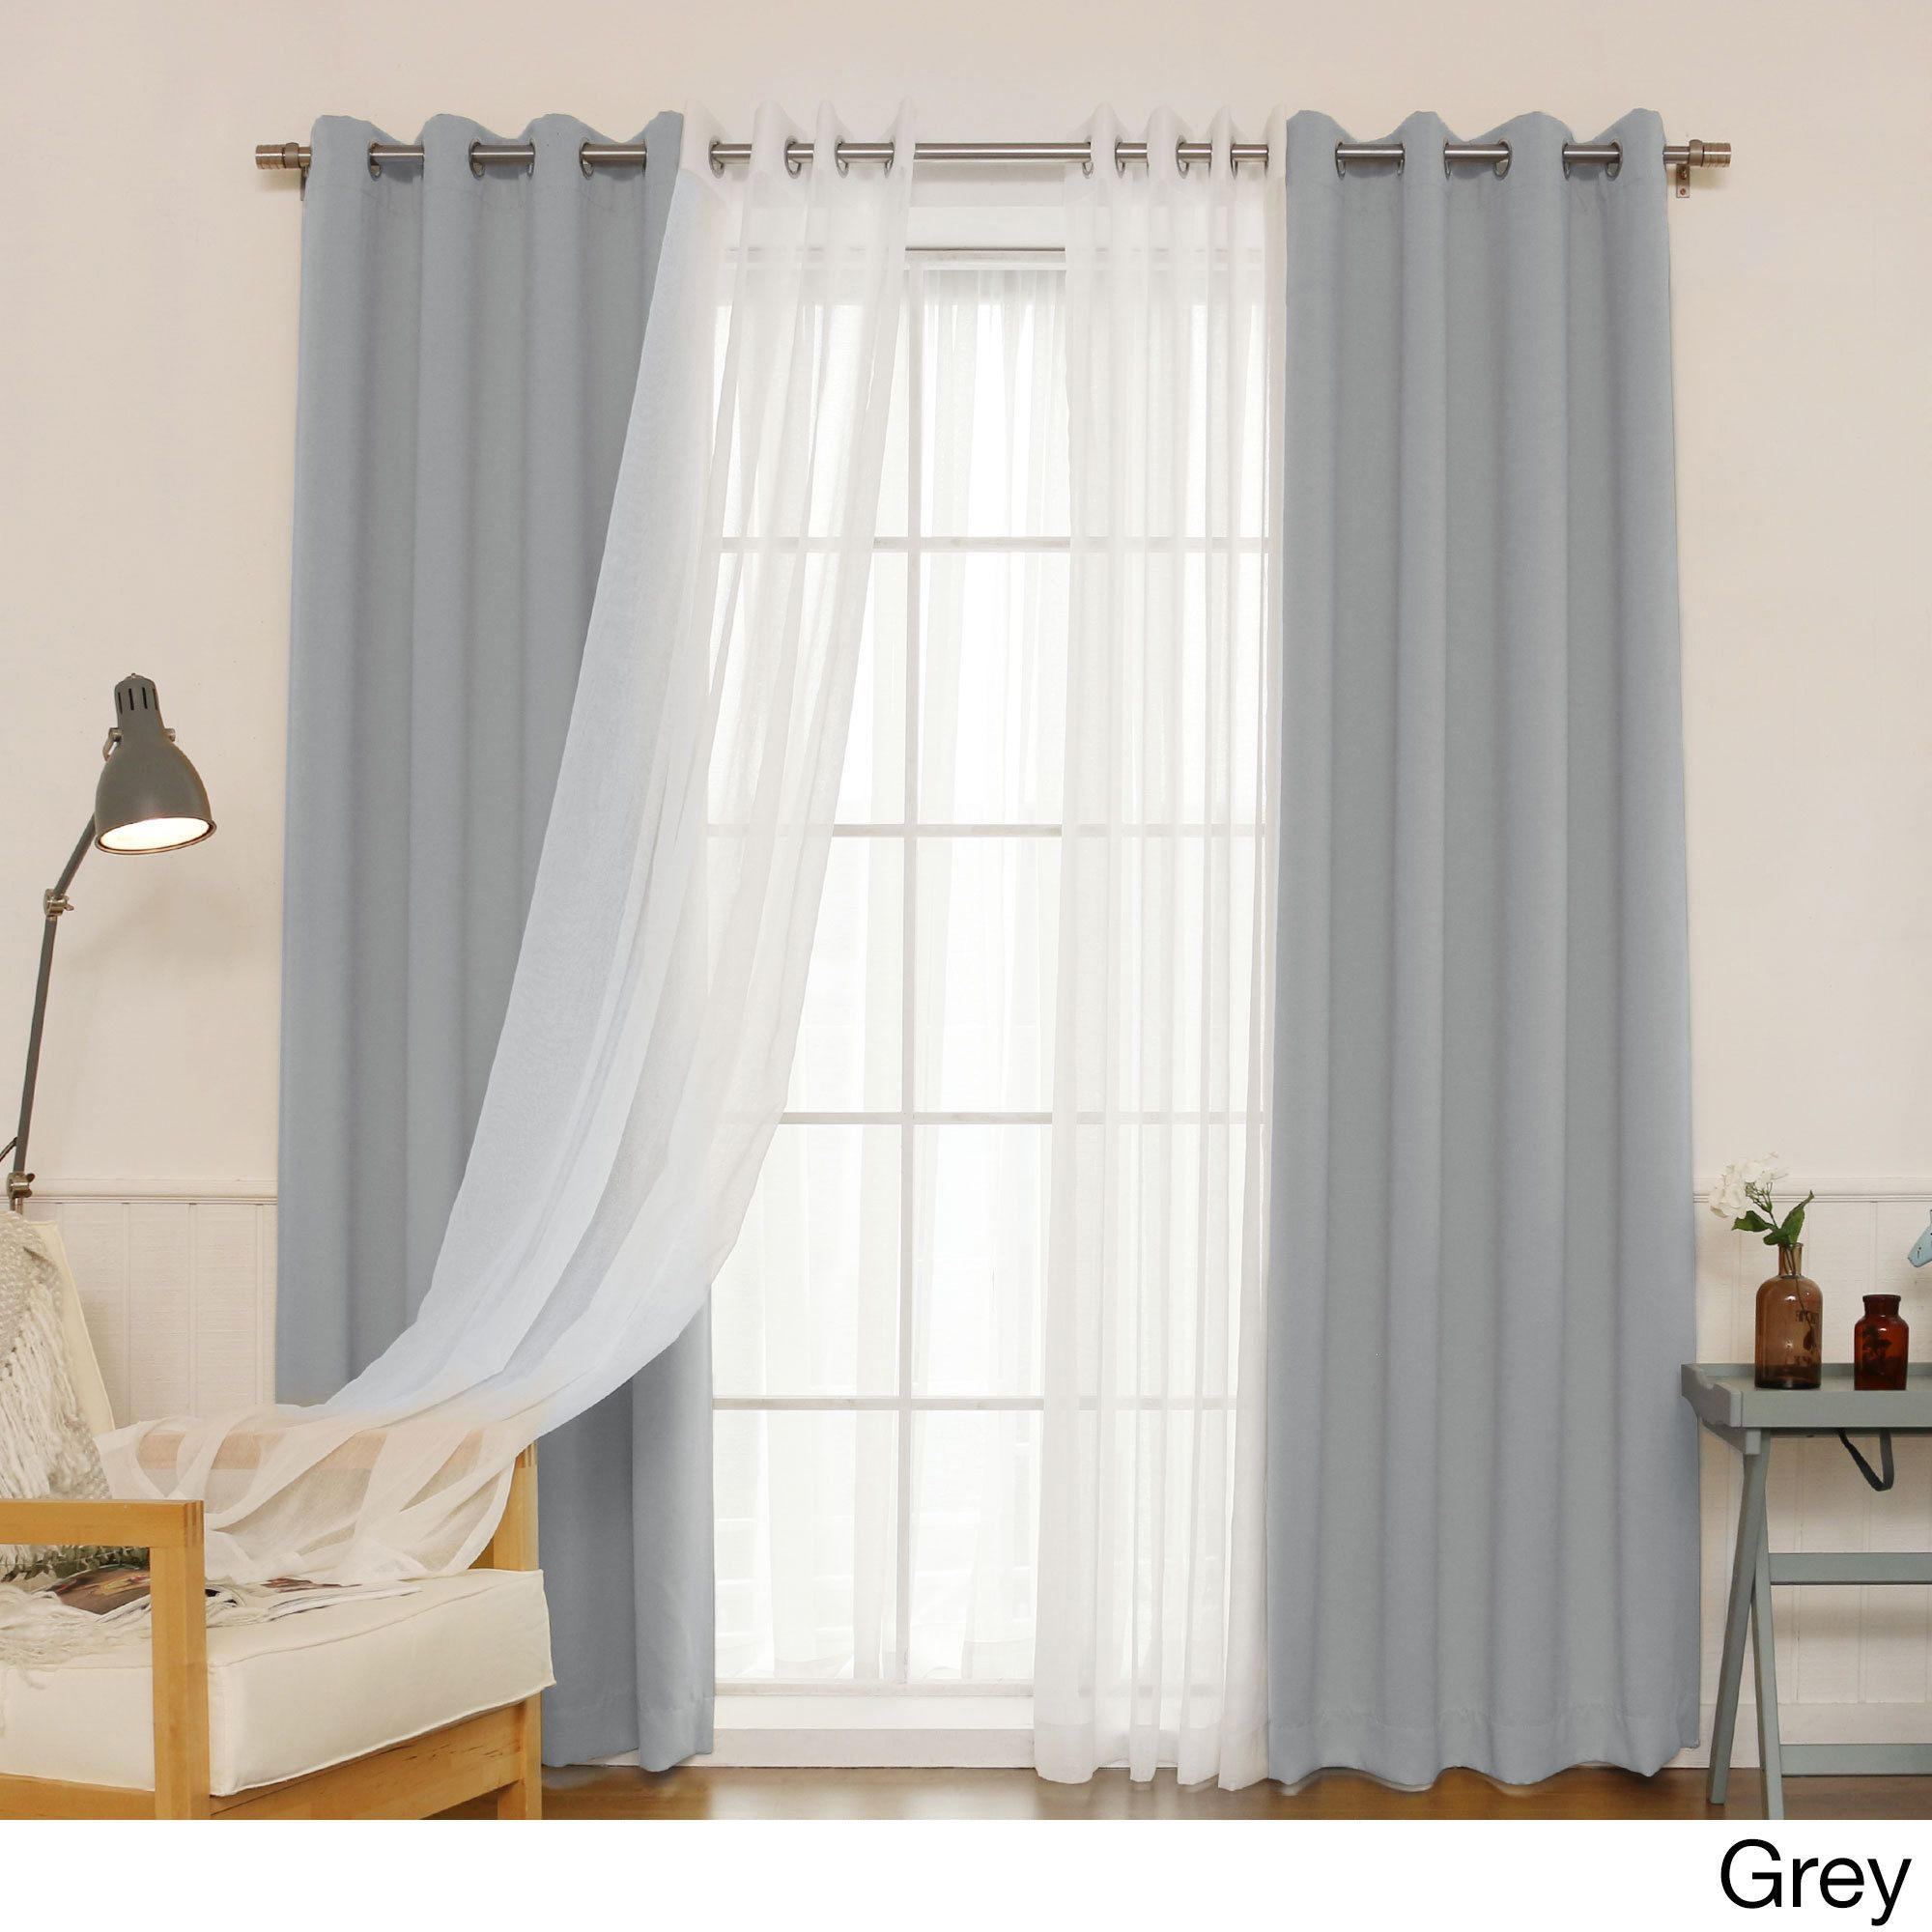 Cortinas Romanas De Blackout Aurora Home Mix Match Curtains Blackout And Muji Sheer 84 Inch